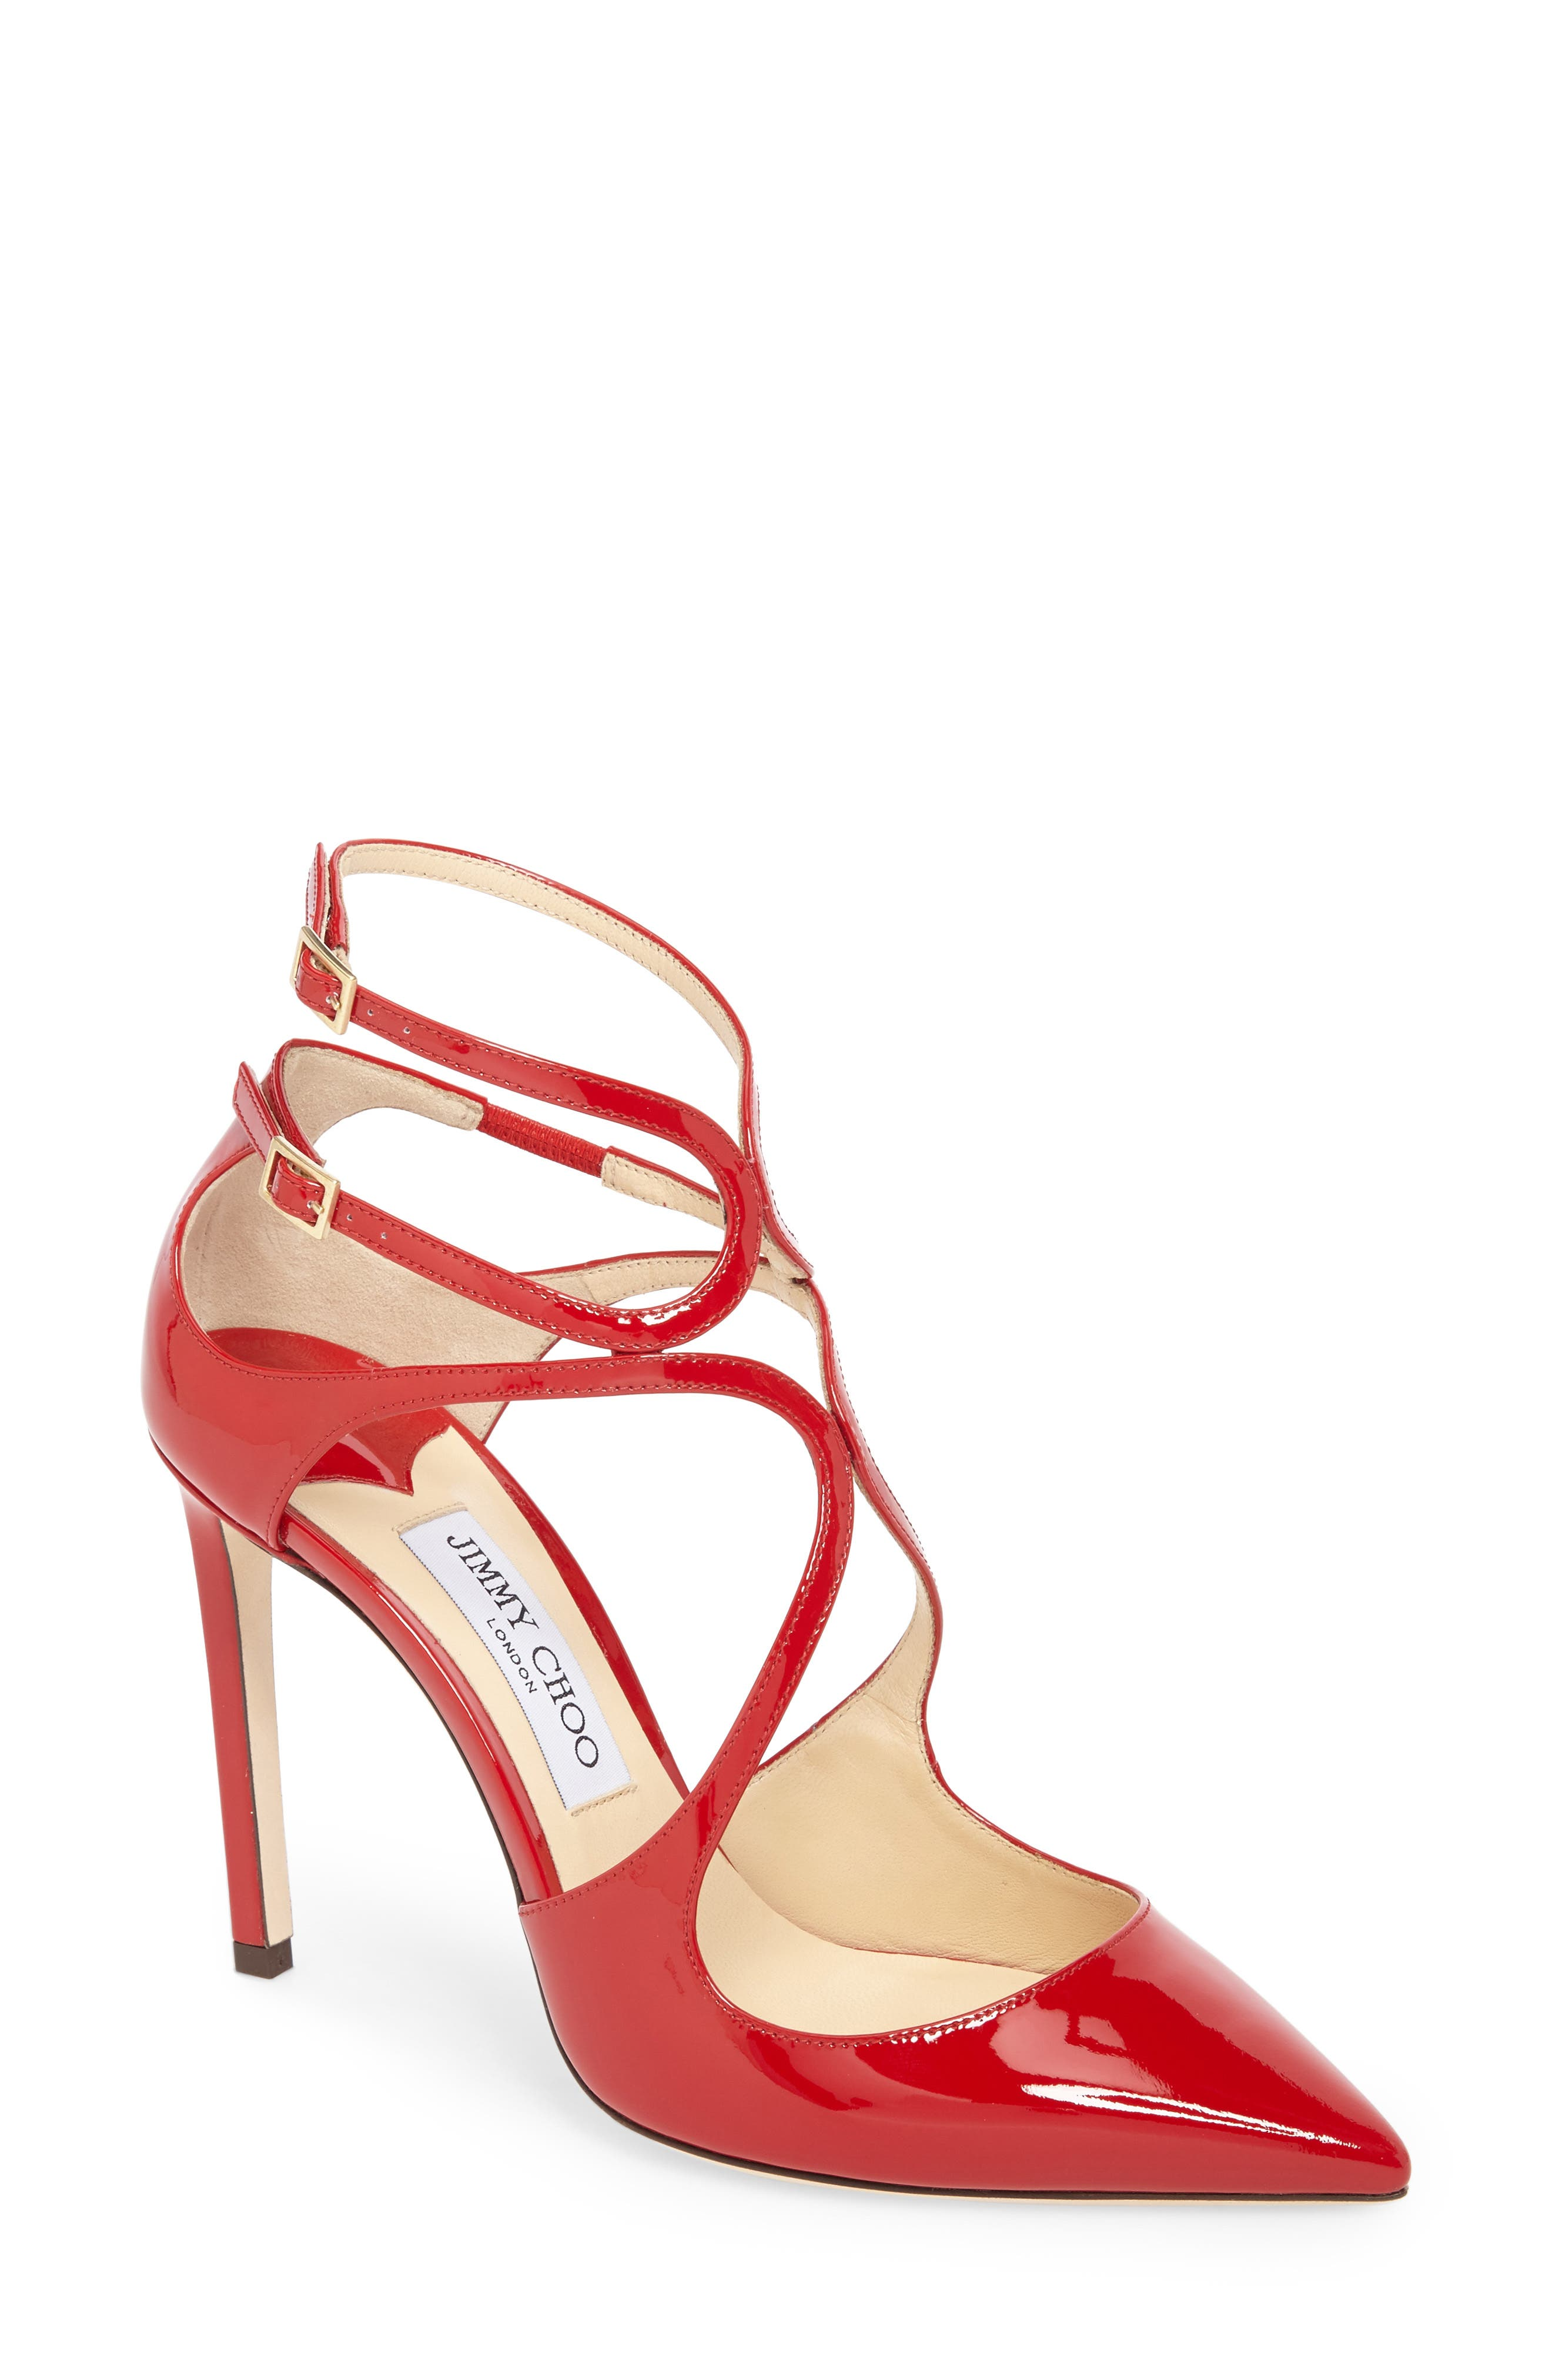 Main Image - Jimmy Choo Lancer Strappy Pump (Women)